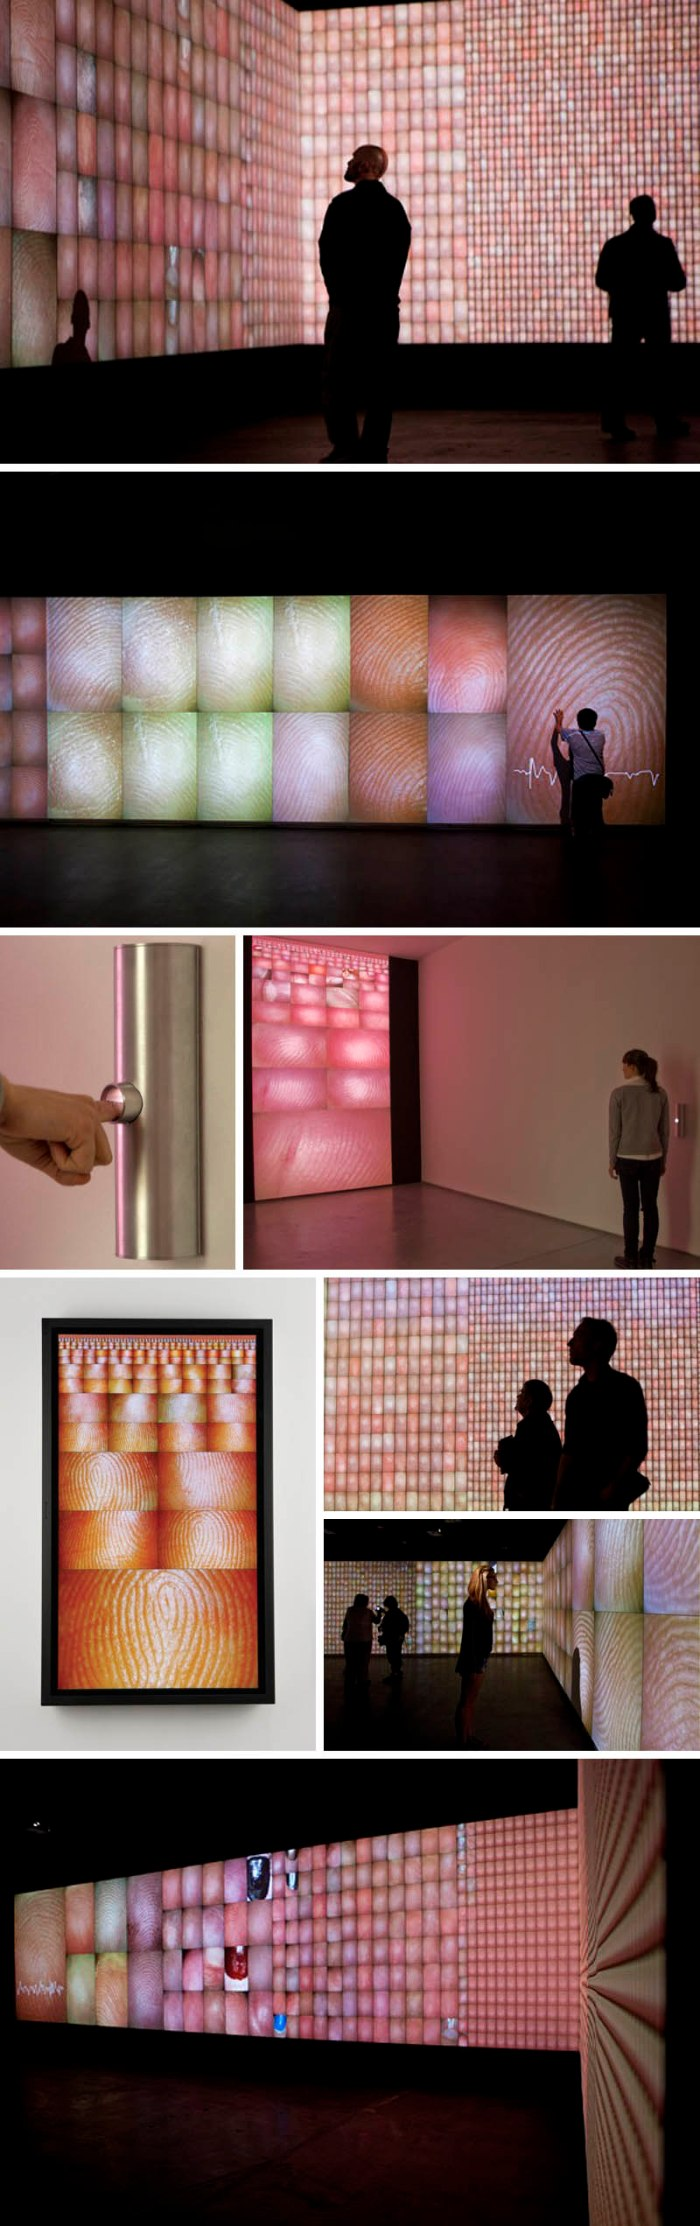 Pulse Index, a cool interactive art installation by Rafael Lozano-Hemmer, records participants' fingerprints at the same time as it detects their heart rates.